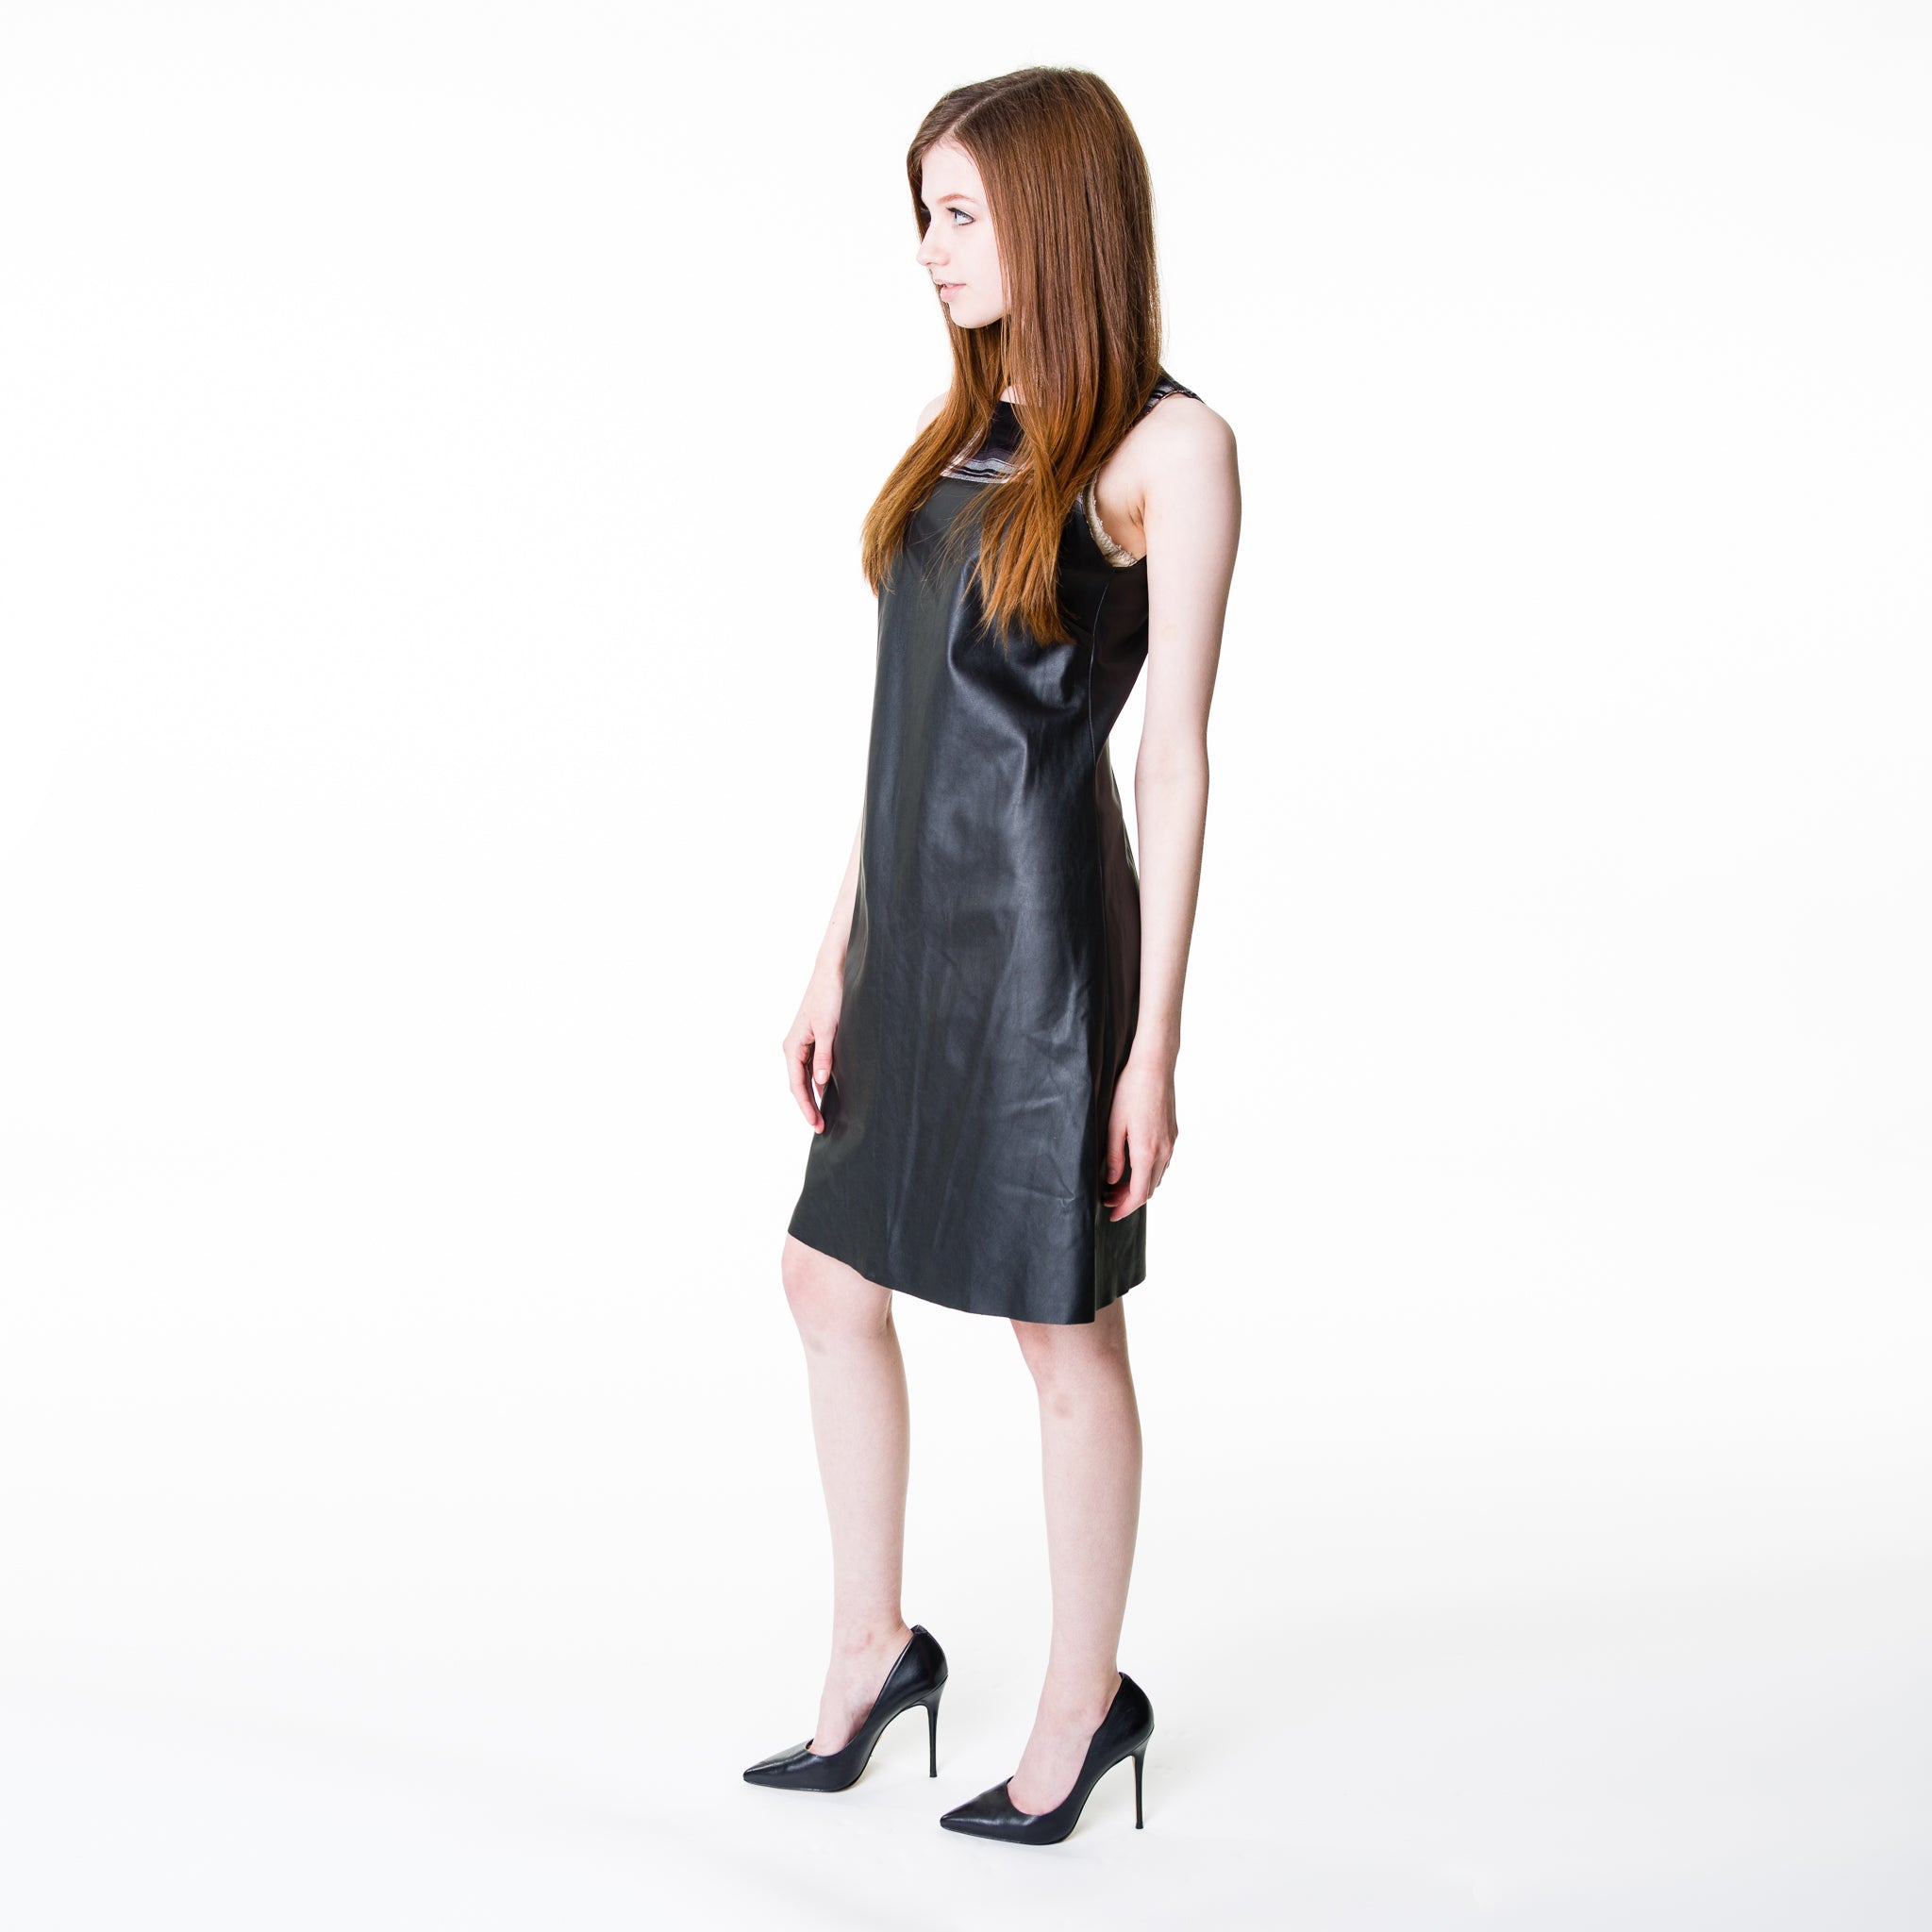 Faux leather shift with a top section made of polyester in a black and white tartan design.